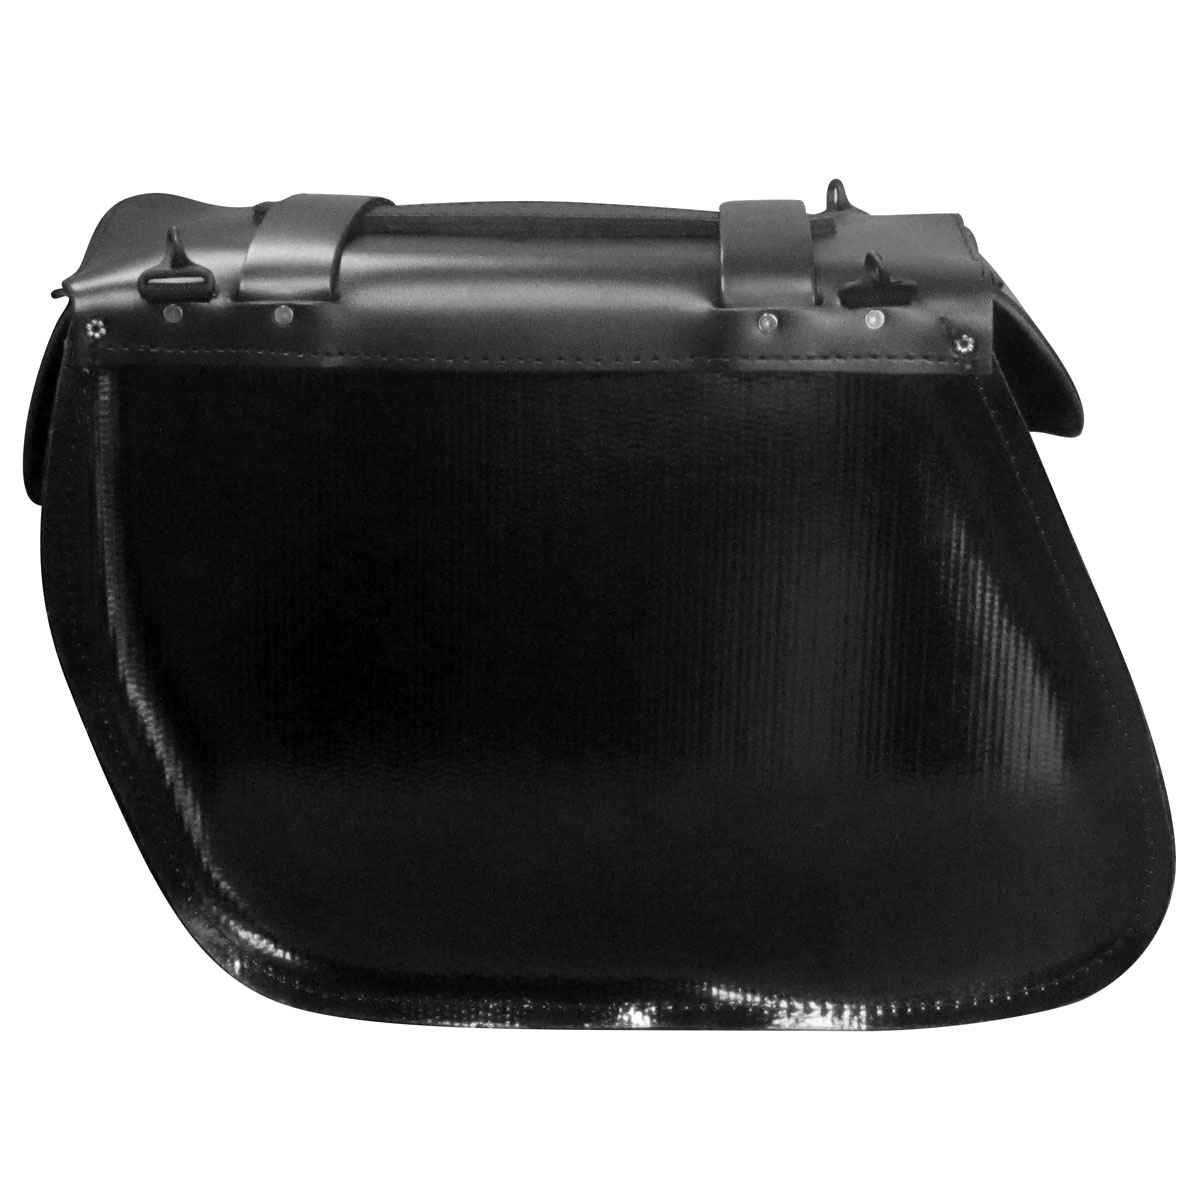 Leatherworks, Inc. Angle Split Lid Box Saddlebags